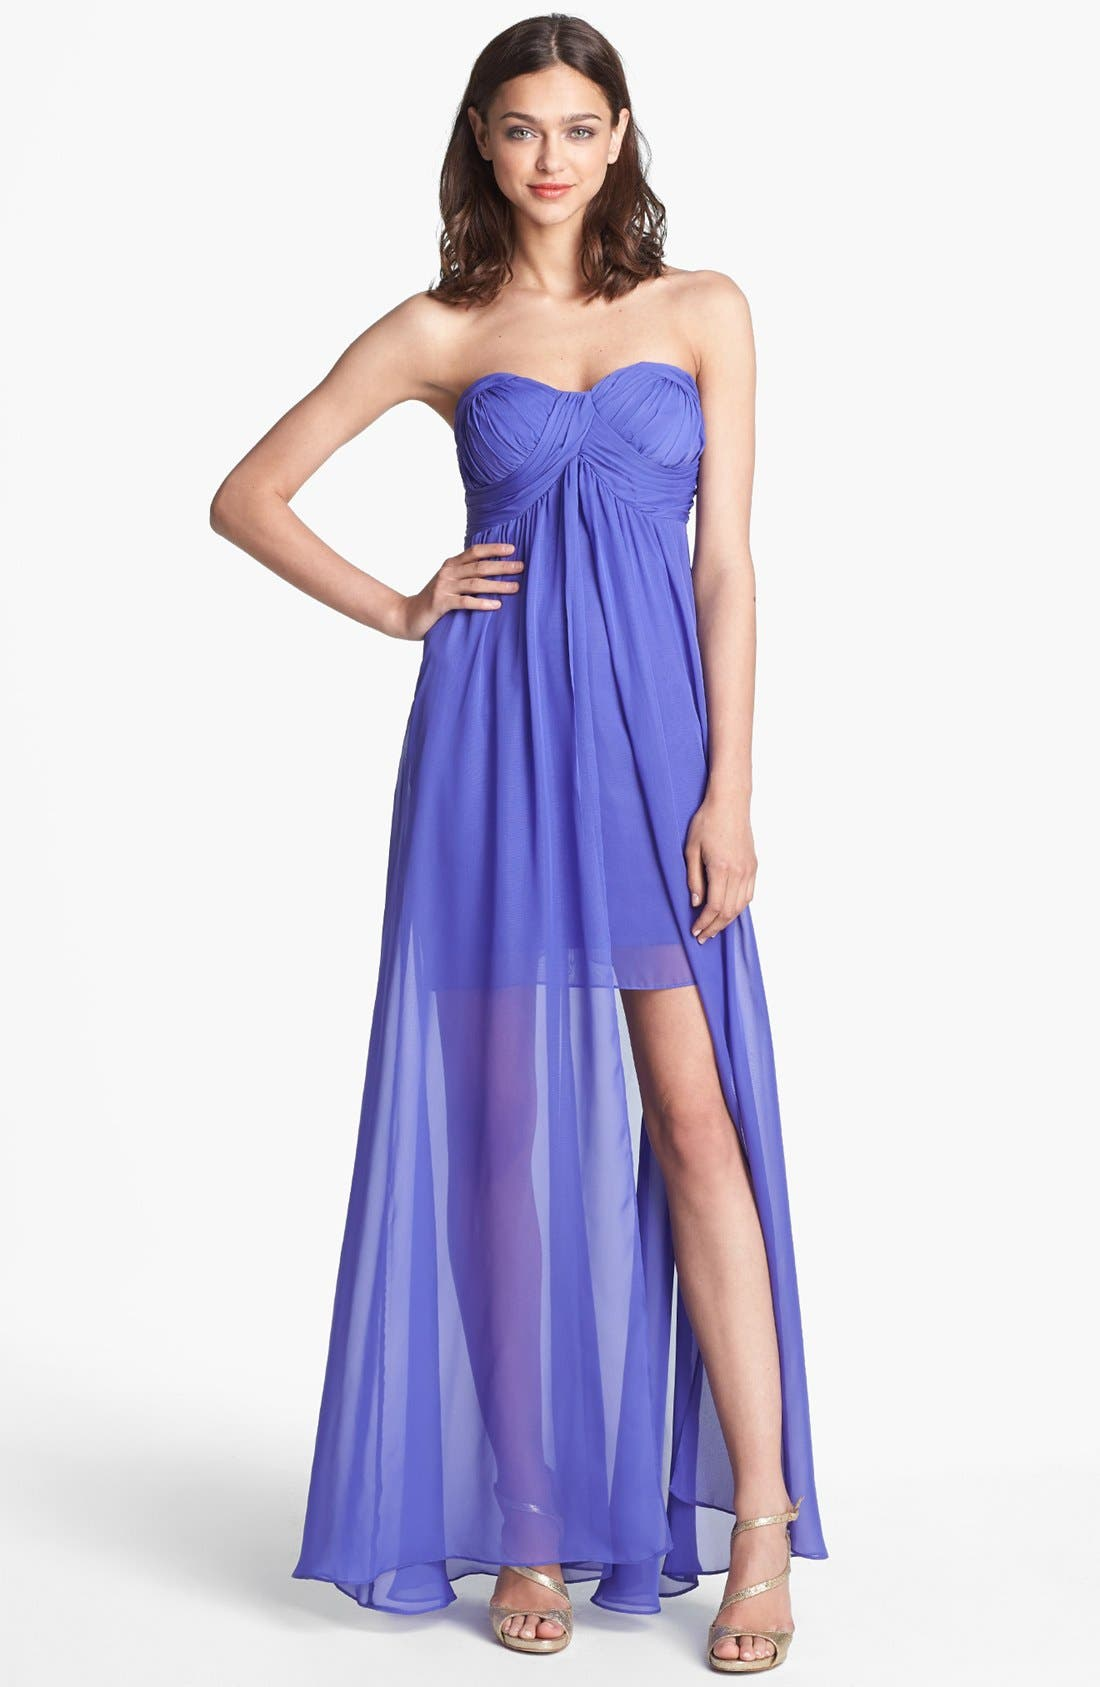 HAILEY BY ADRIANNA PAPELL Flyaway Chiffon Dress, Main, color, 513